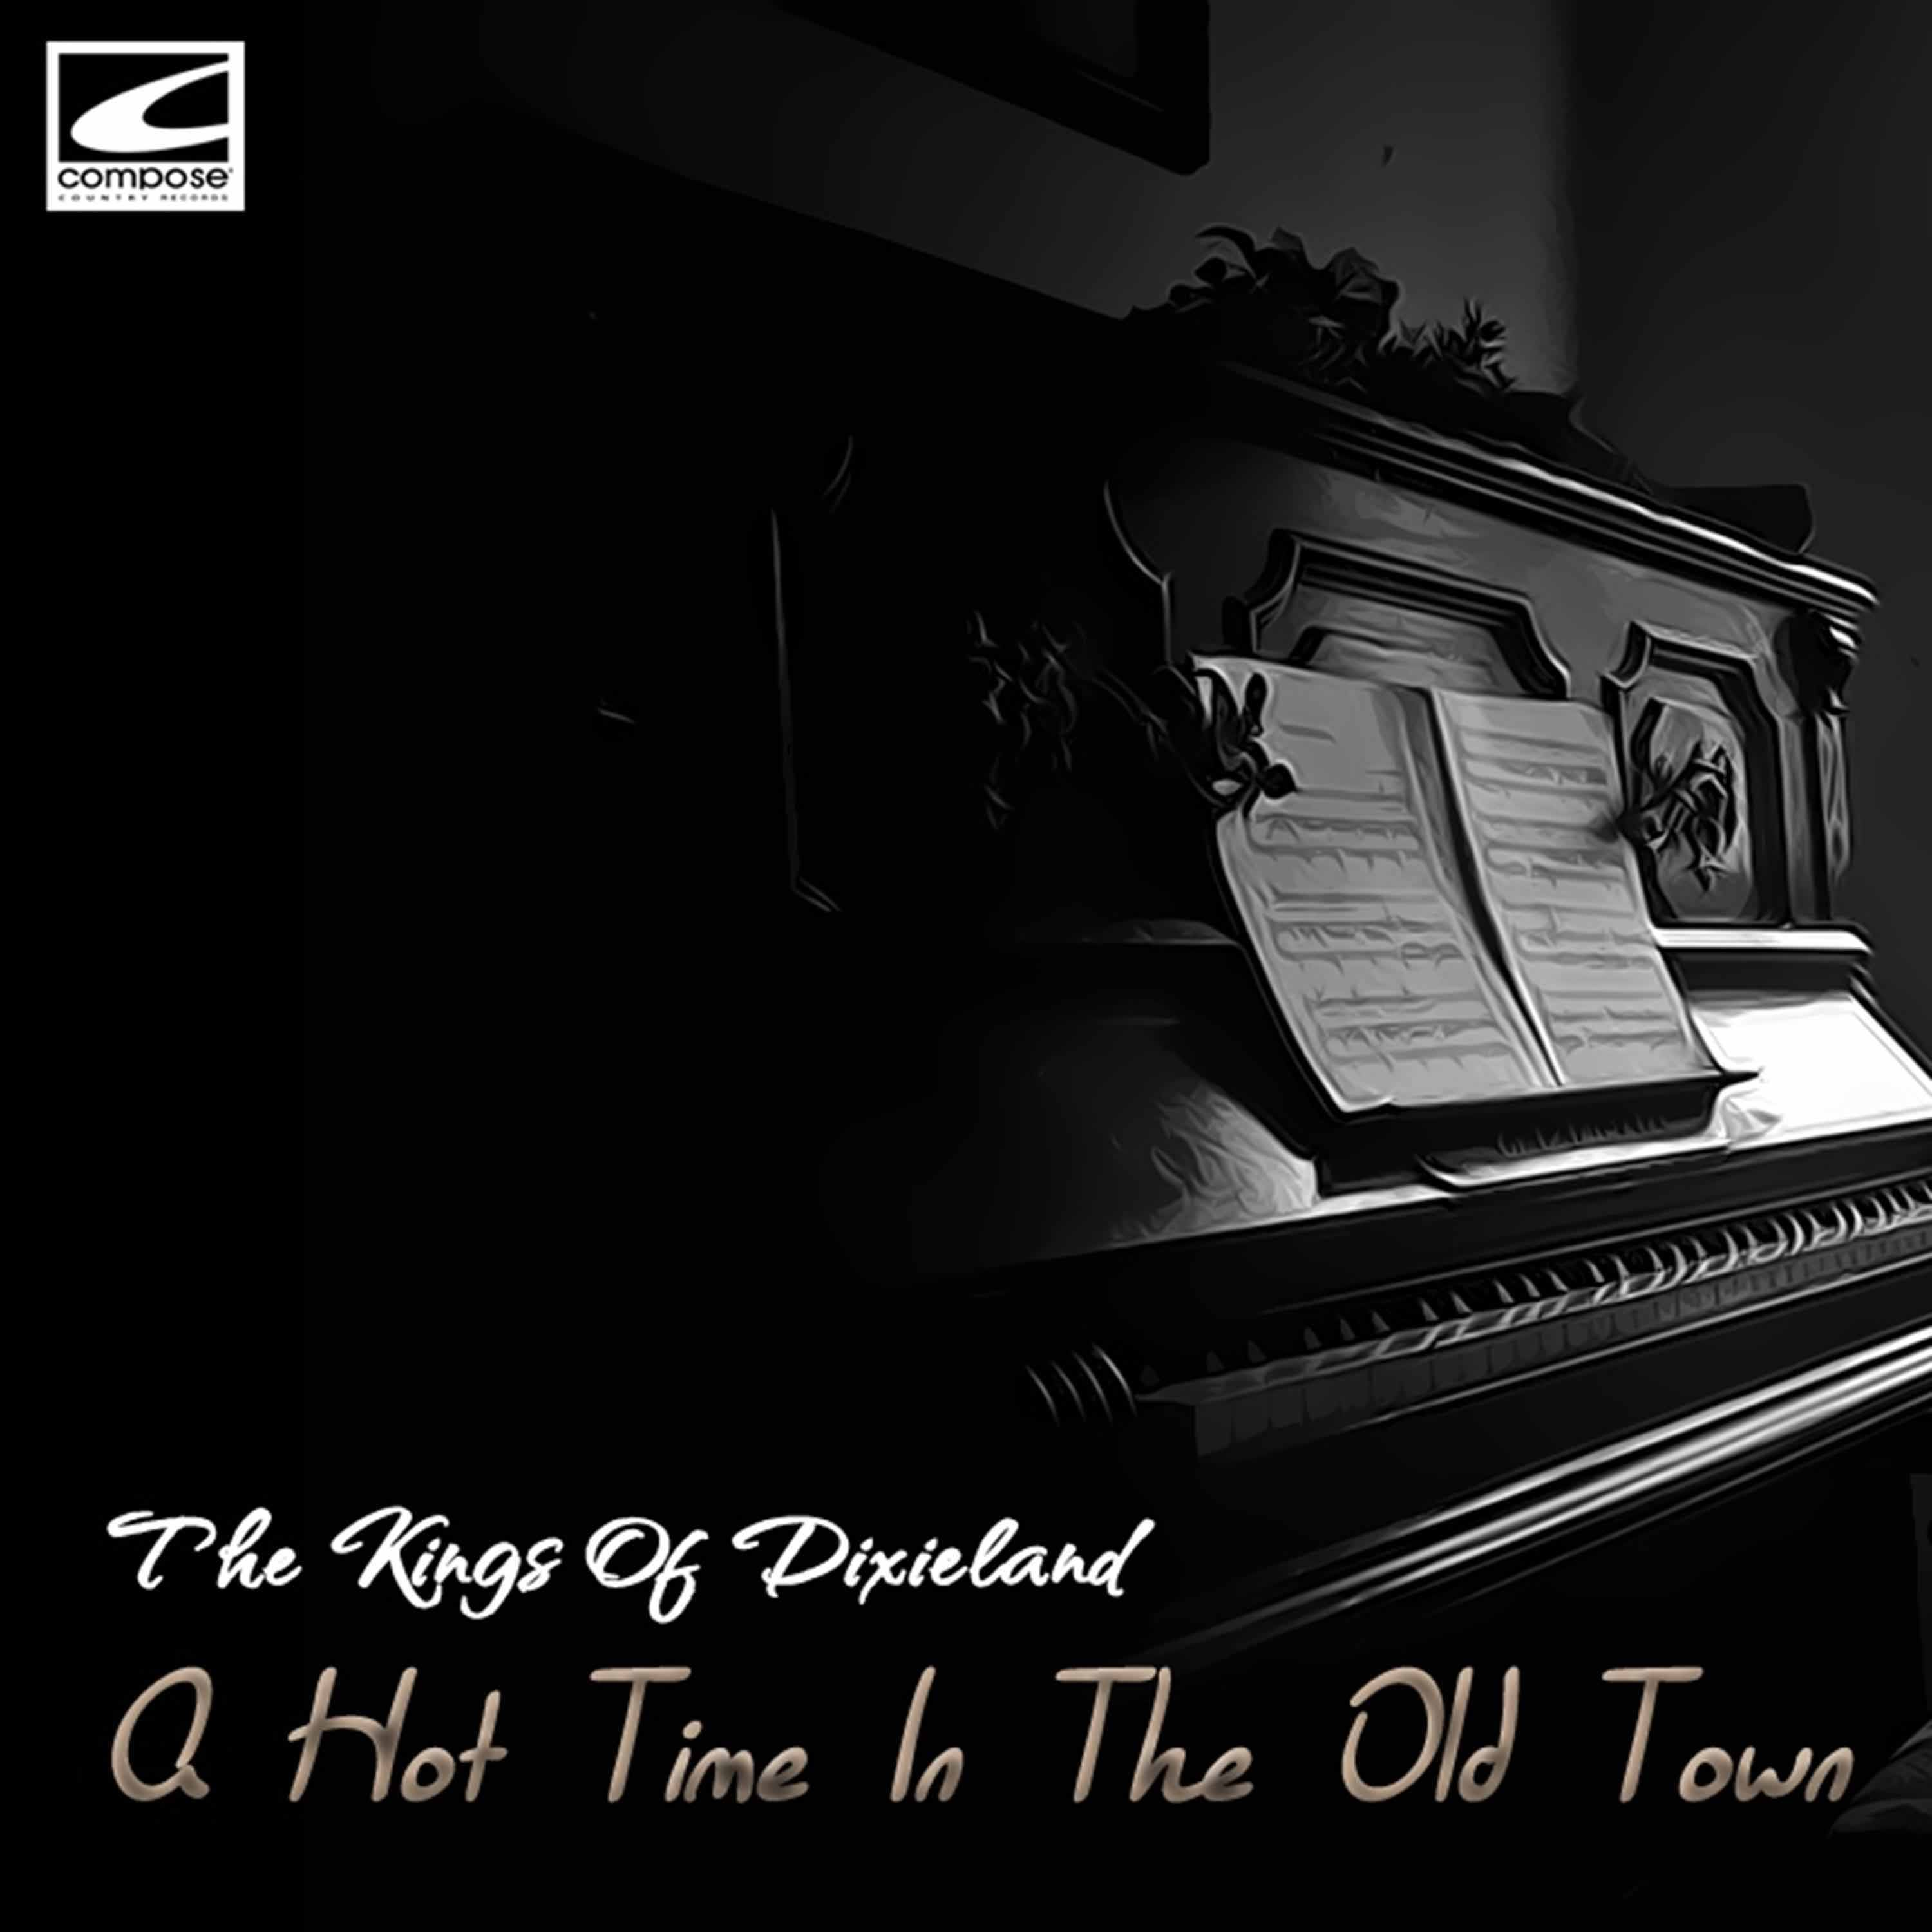 A Hot Time in the Old Town